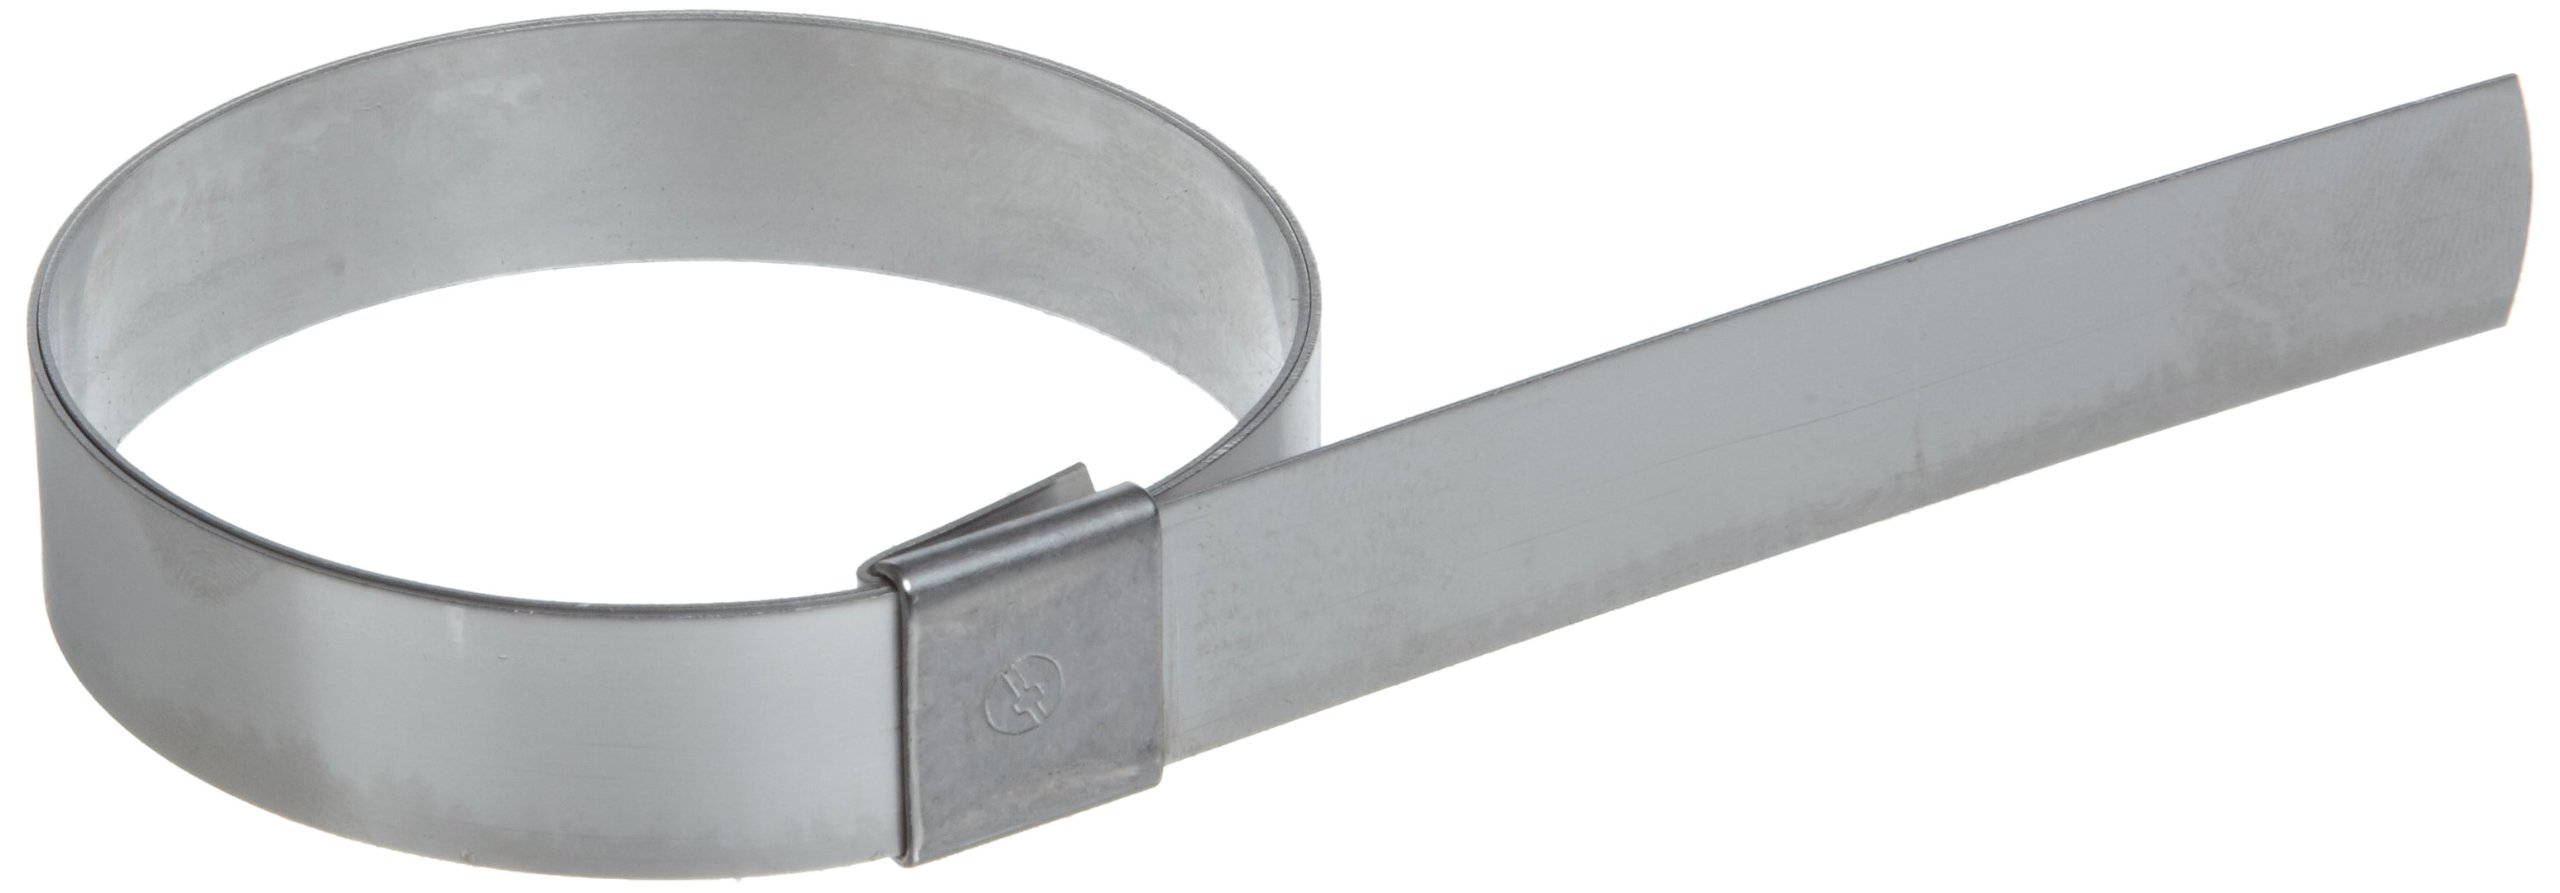 BAND-IT CP6S99 5/8'' Wide x 0.025'' Thick 1-1/2'' Diameter, 201 Stainless Steel Center Punch Clamp (100 Per Box)